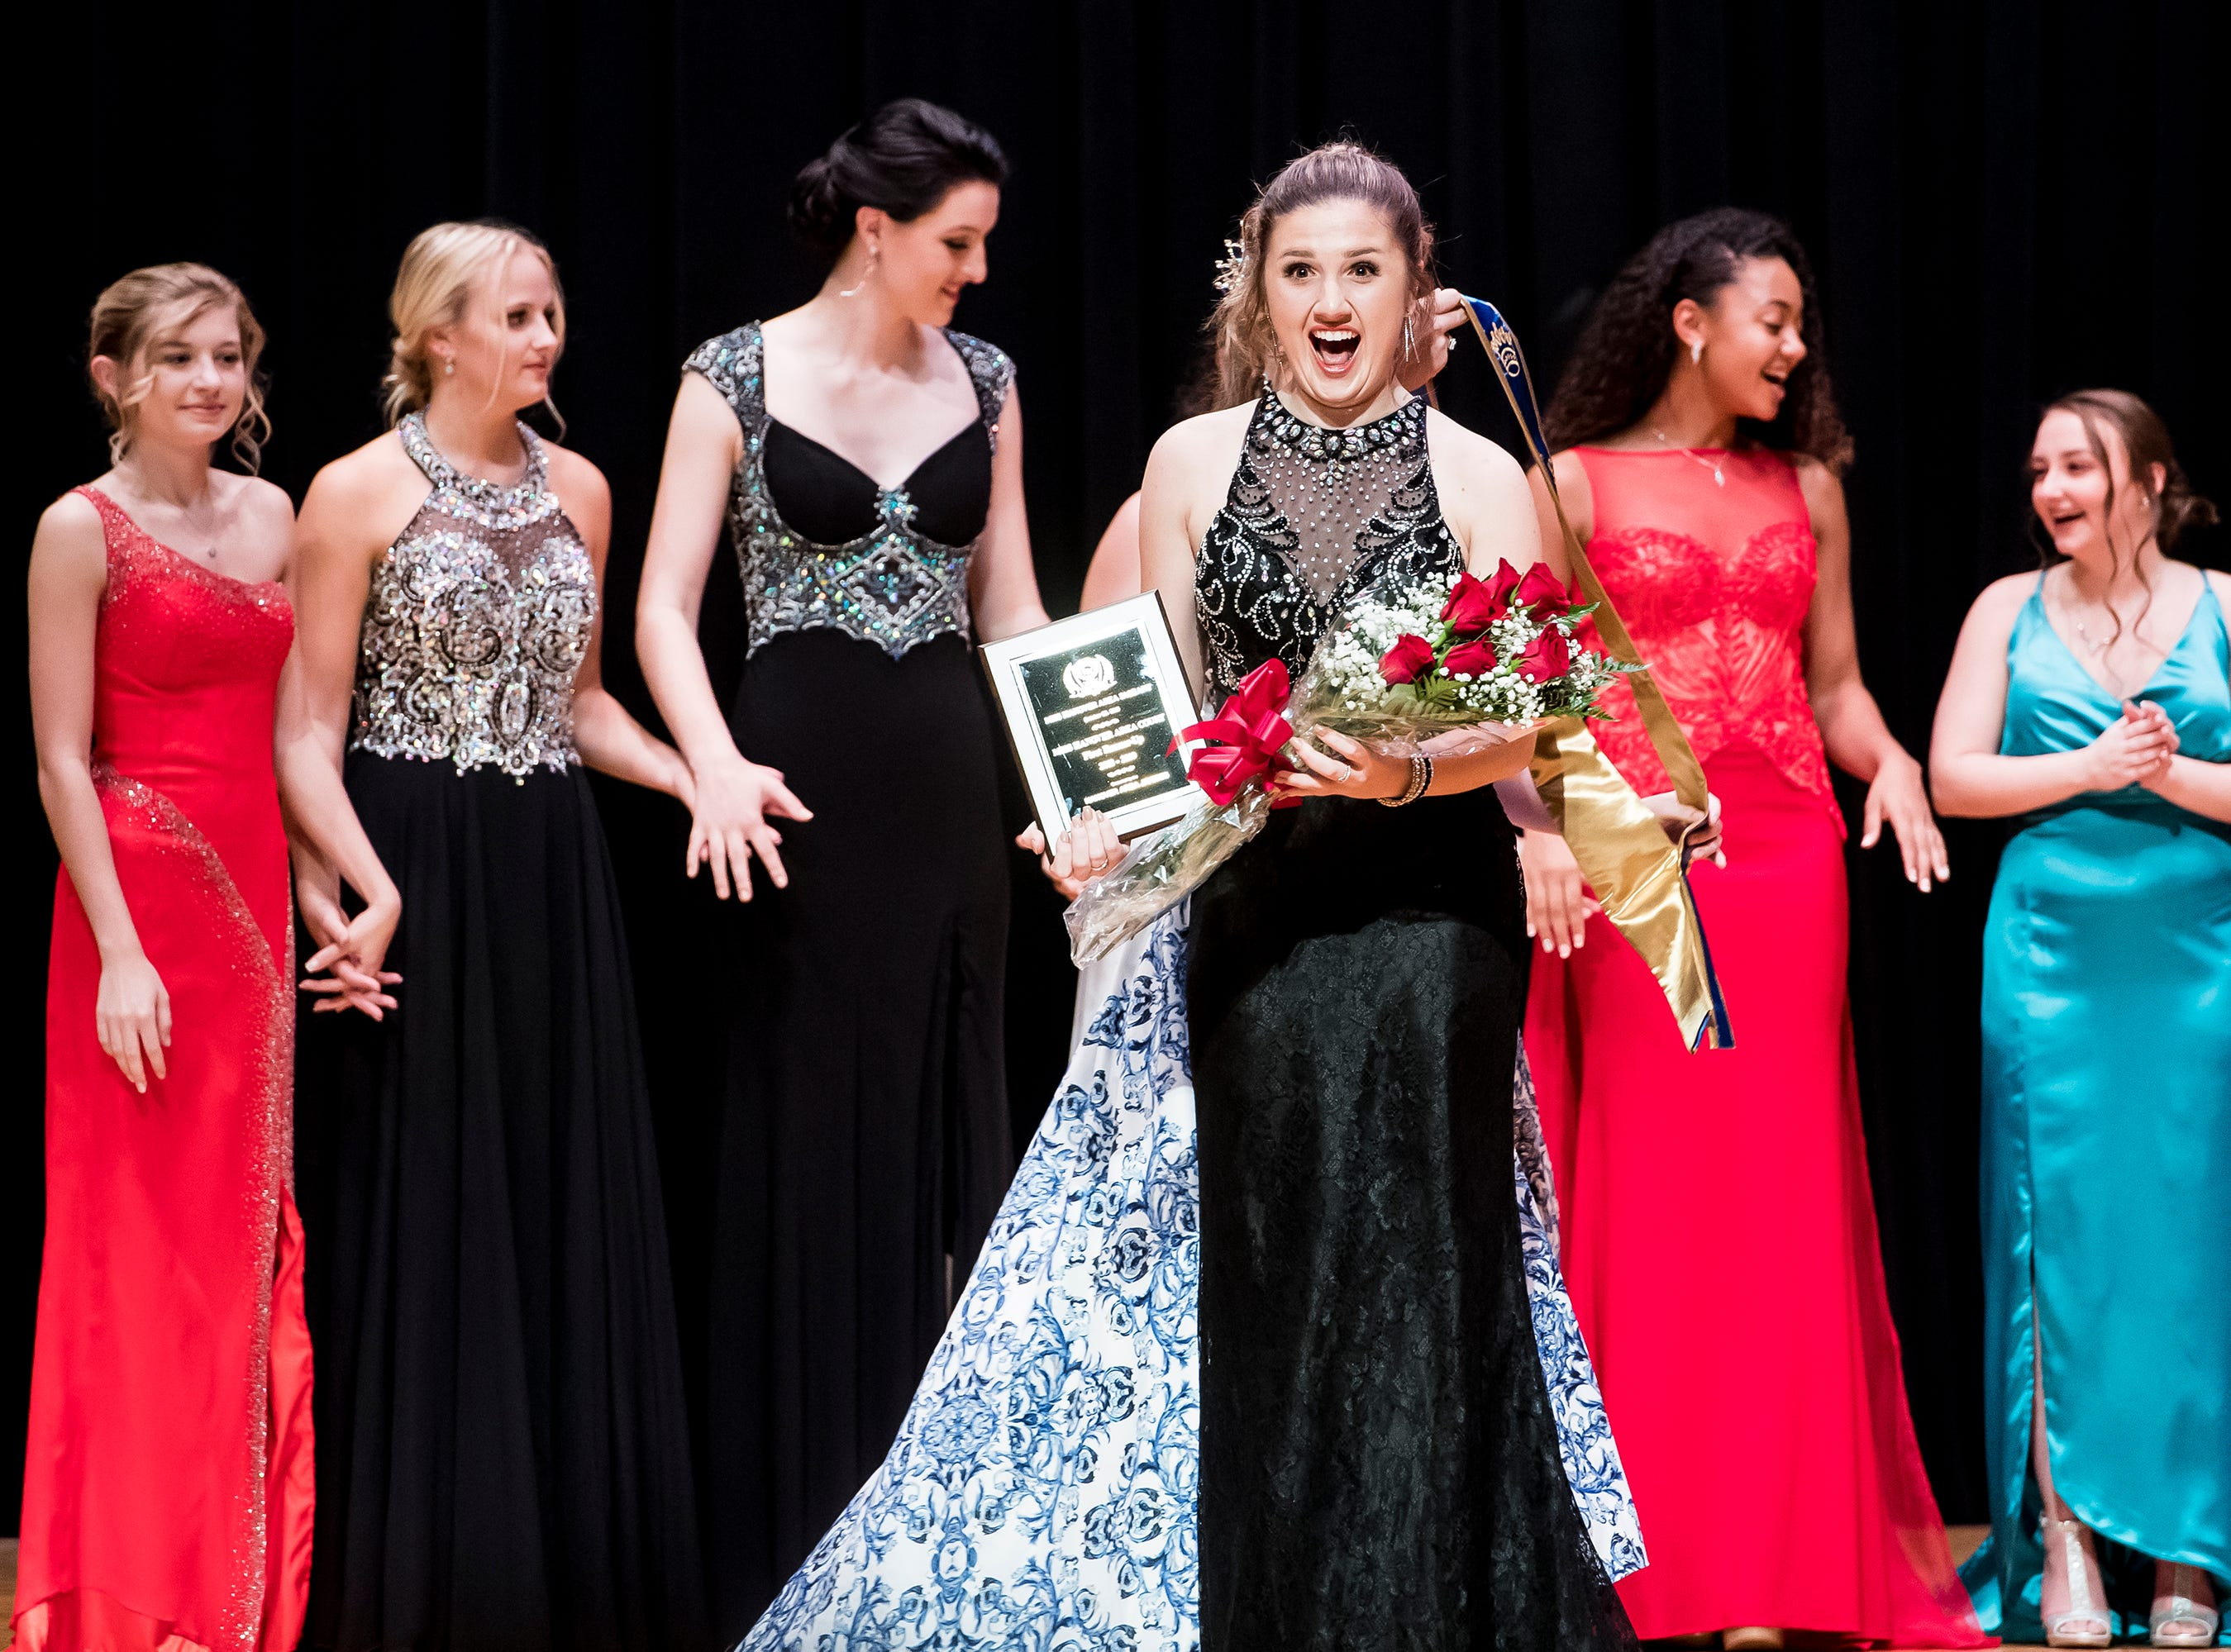 Spring Grove's Hannah Nell reacts as she is presented as the first runner-up at the 50th Miss Hanover Area on Monday, October 22, 2018.